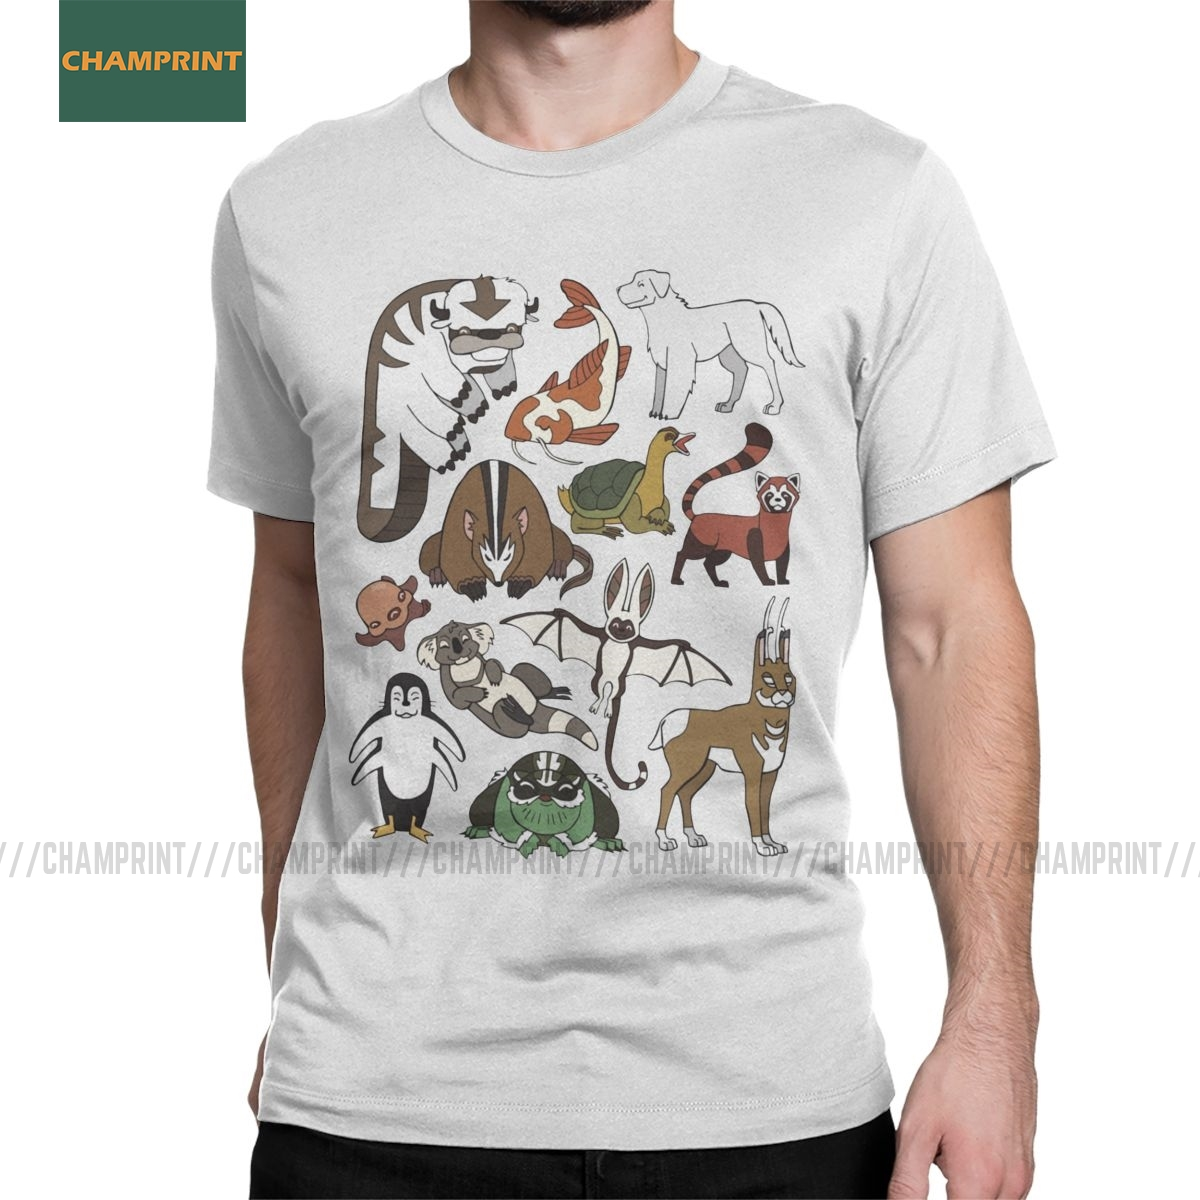 Avatar The Last Airbender Menagerie T Shirt For Men Pure Cotton Leisure T-Shirts Anime Atla Bison Yip Tee Shirt Short Sleeve Top